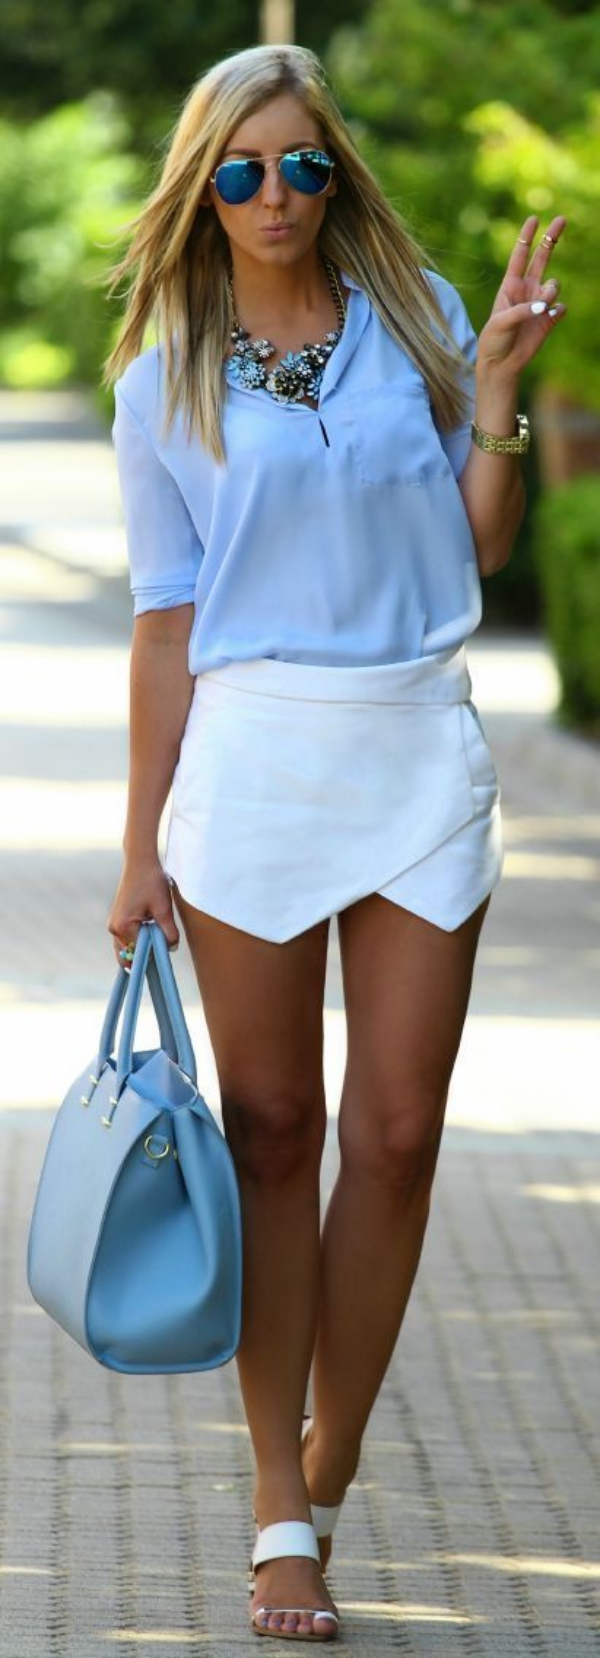 Simple-Style-Rules-followed-by-Fashion-Models-7